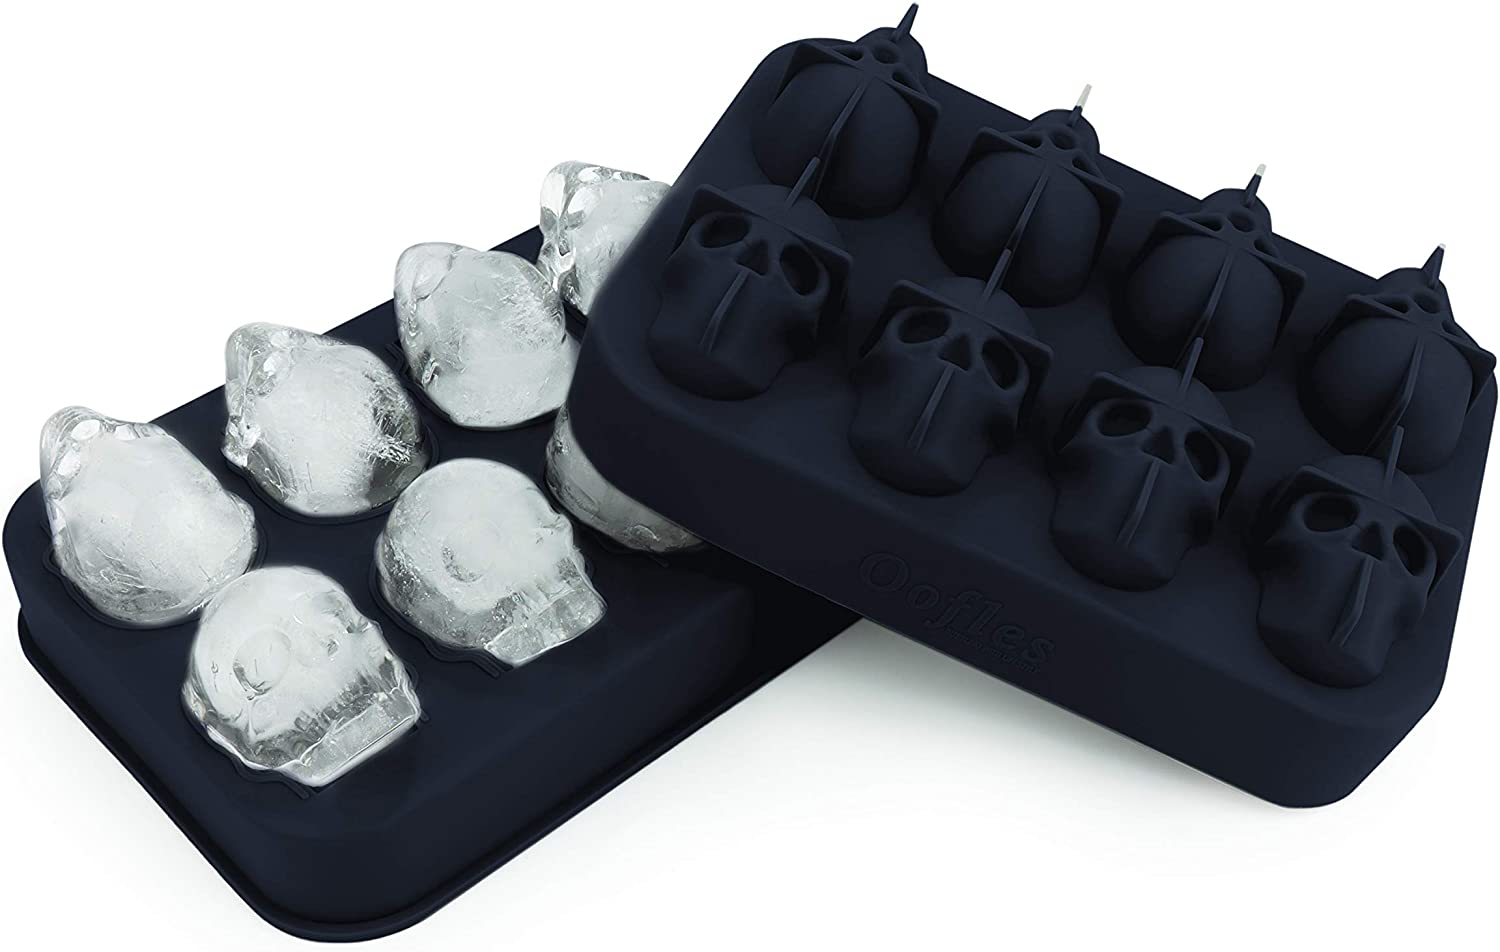 3D Skull Ice Cube Mold Silicone Tray, Makes Skulls, Leak Free, Ice Cube Maker, Whiskey Ice, Chocolate, Soap and Bath Bomb Molds (8, BLUE)